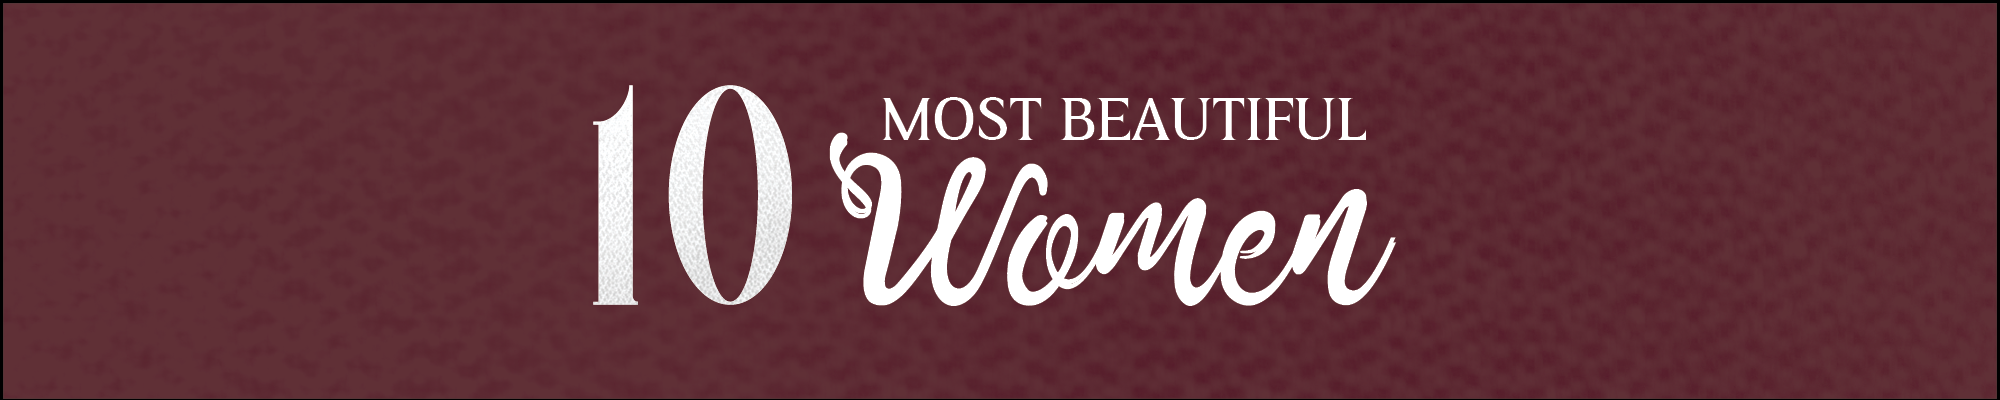 10 most beautiful women